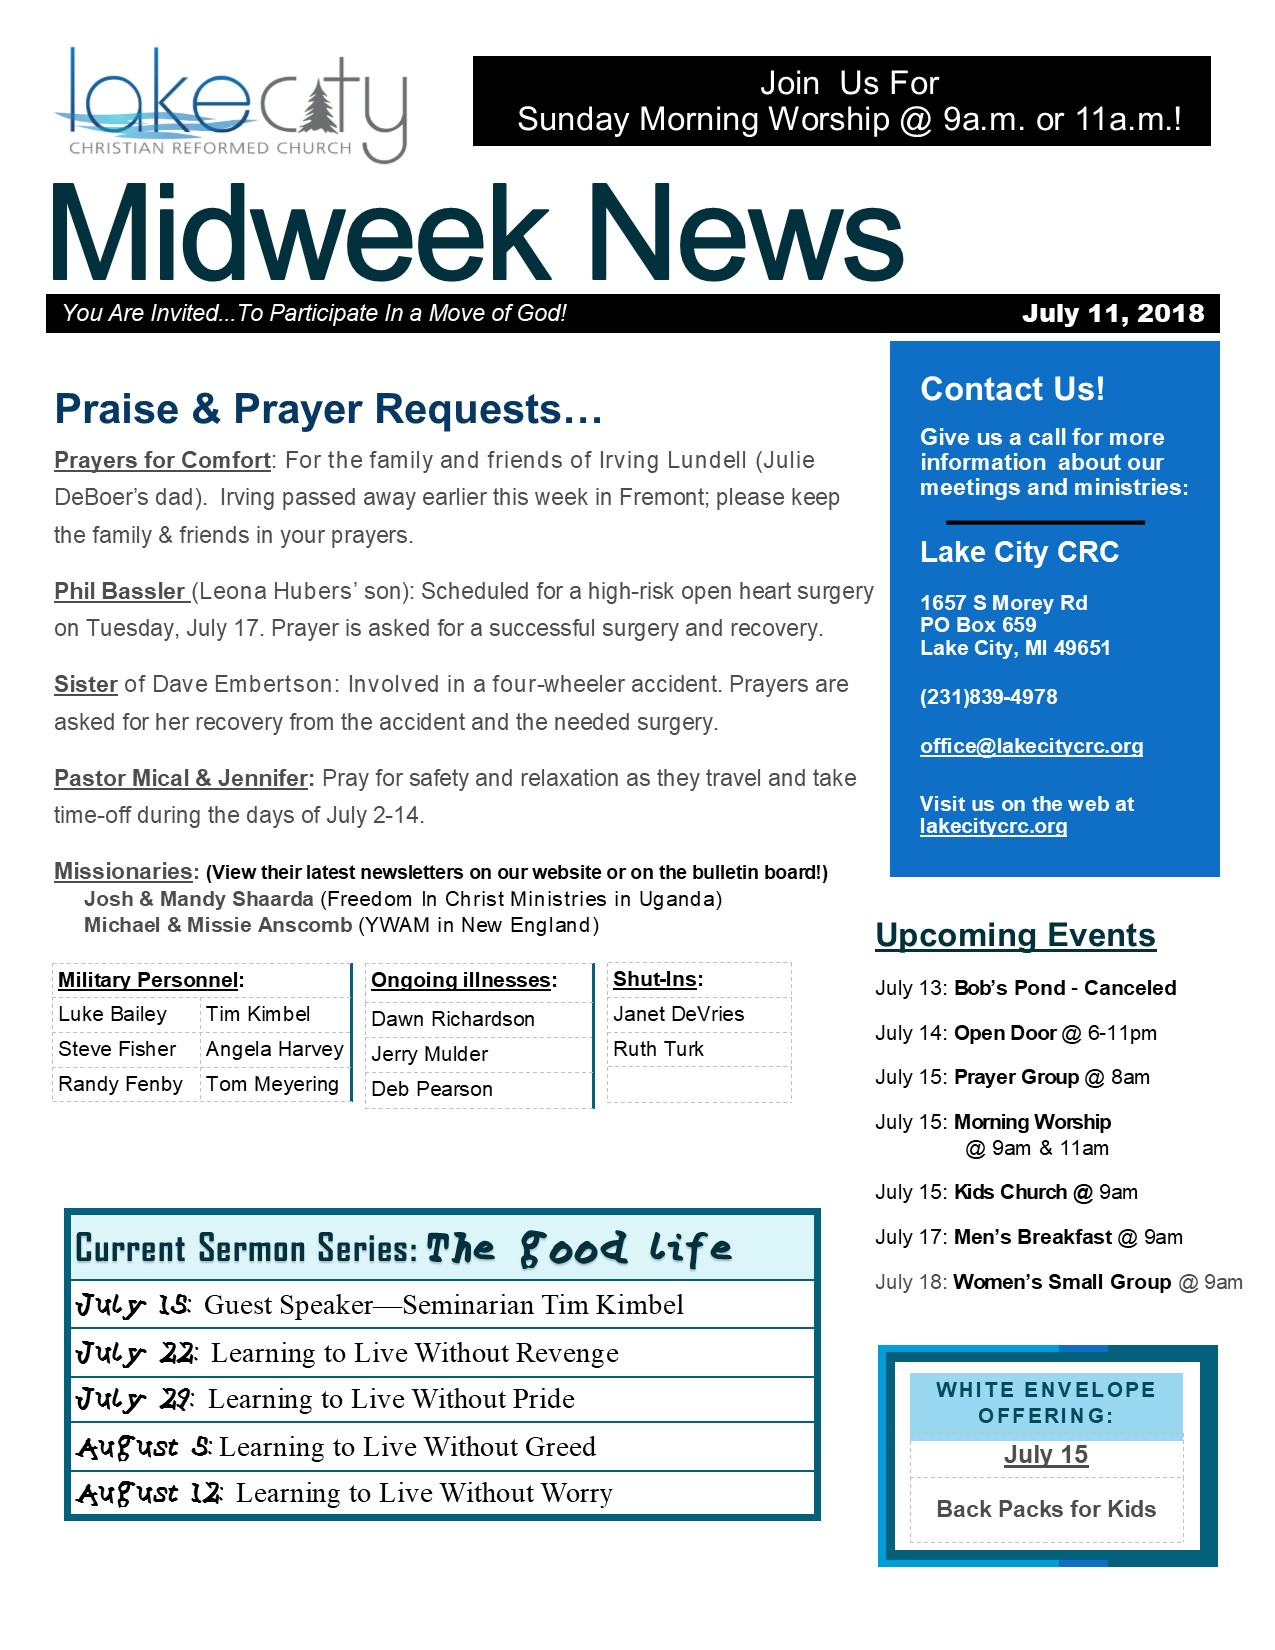 July 11, 2018 Midweek News